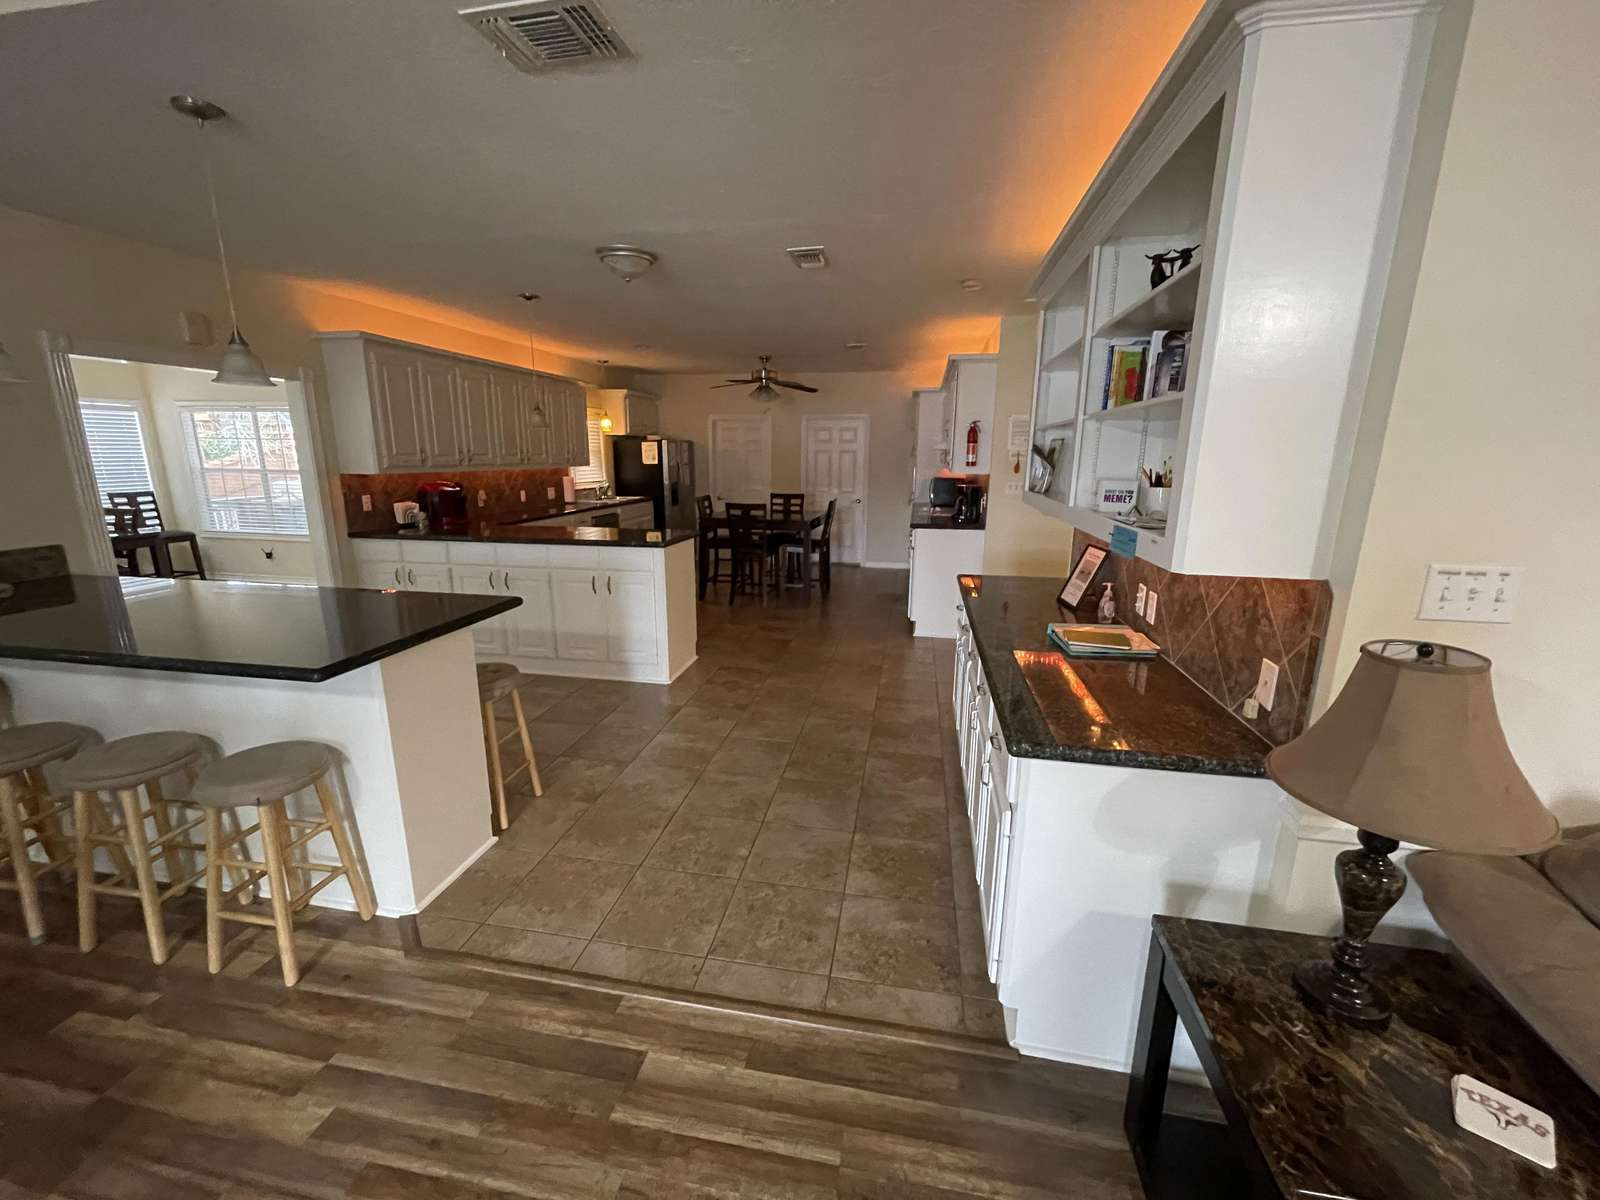 The accent lights in the kitchen are a nice touch for when activities are winding down